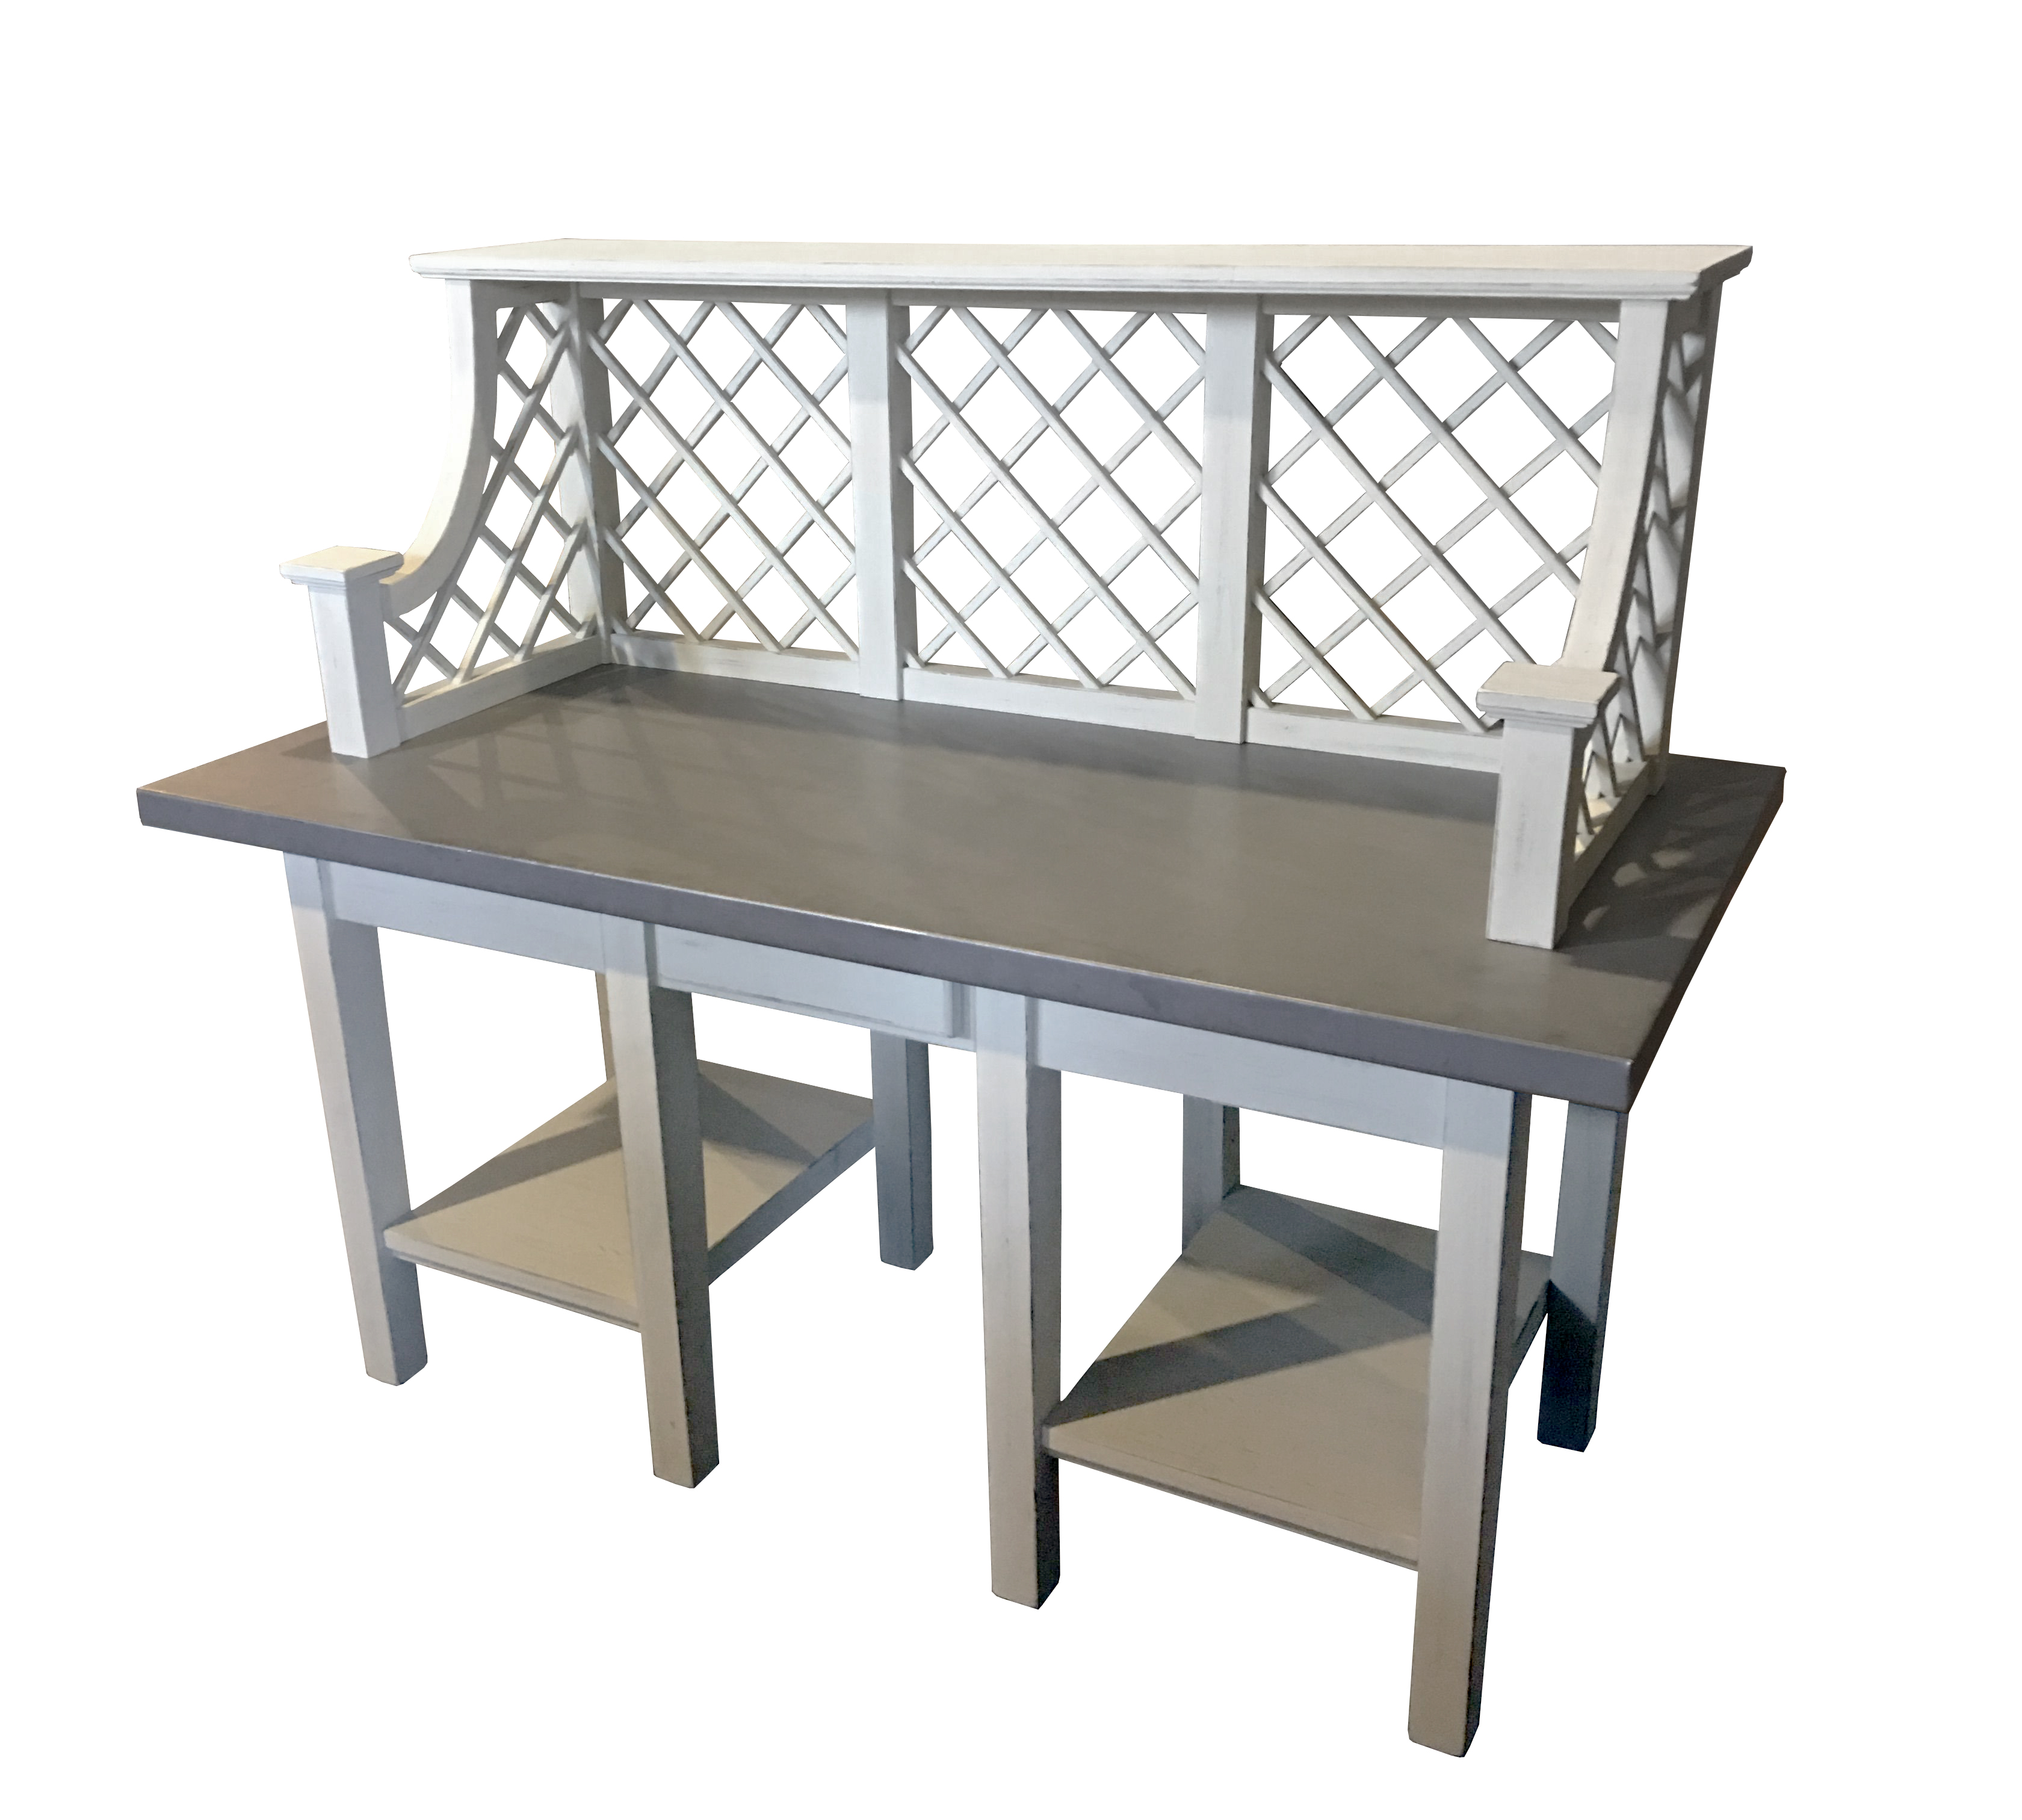 folding table mpg mpn potting merry bench